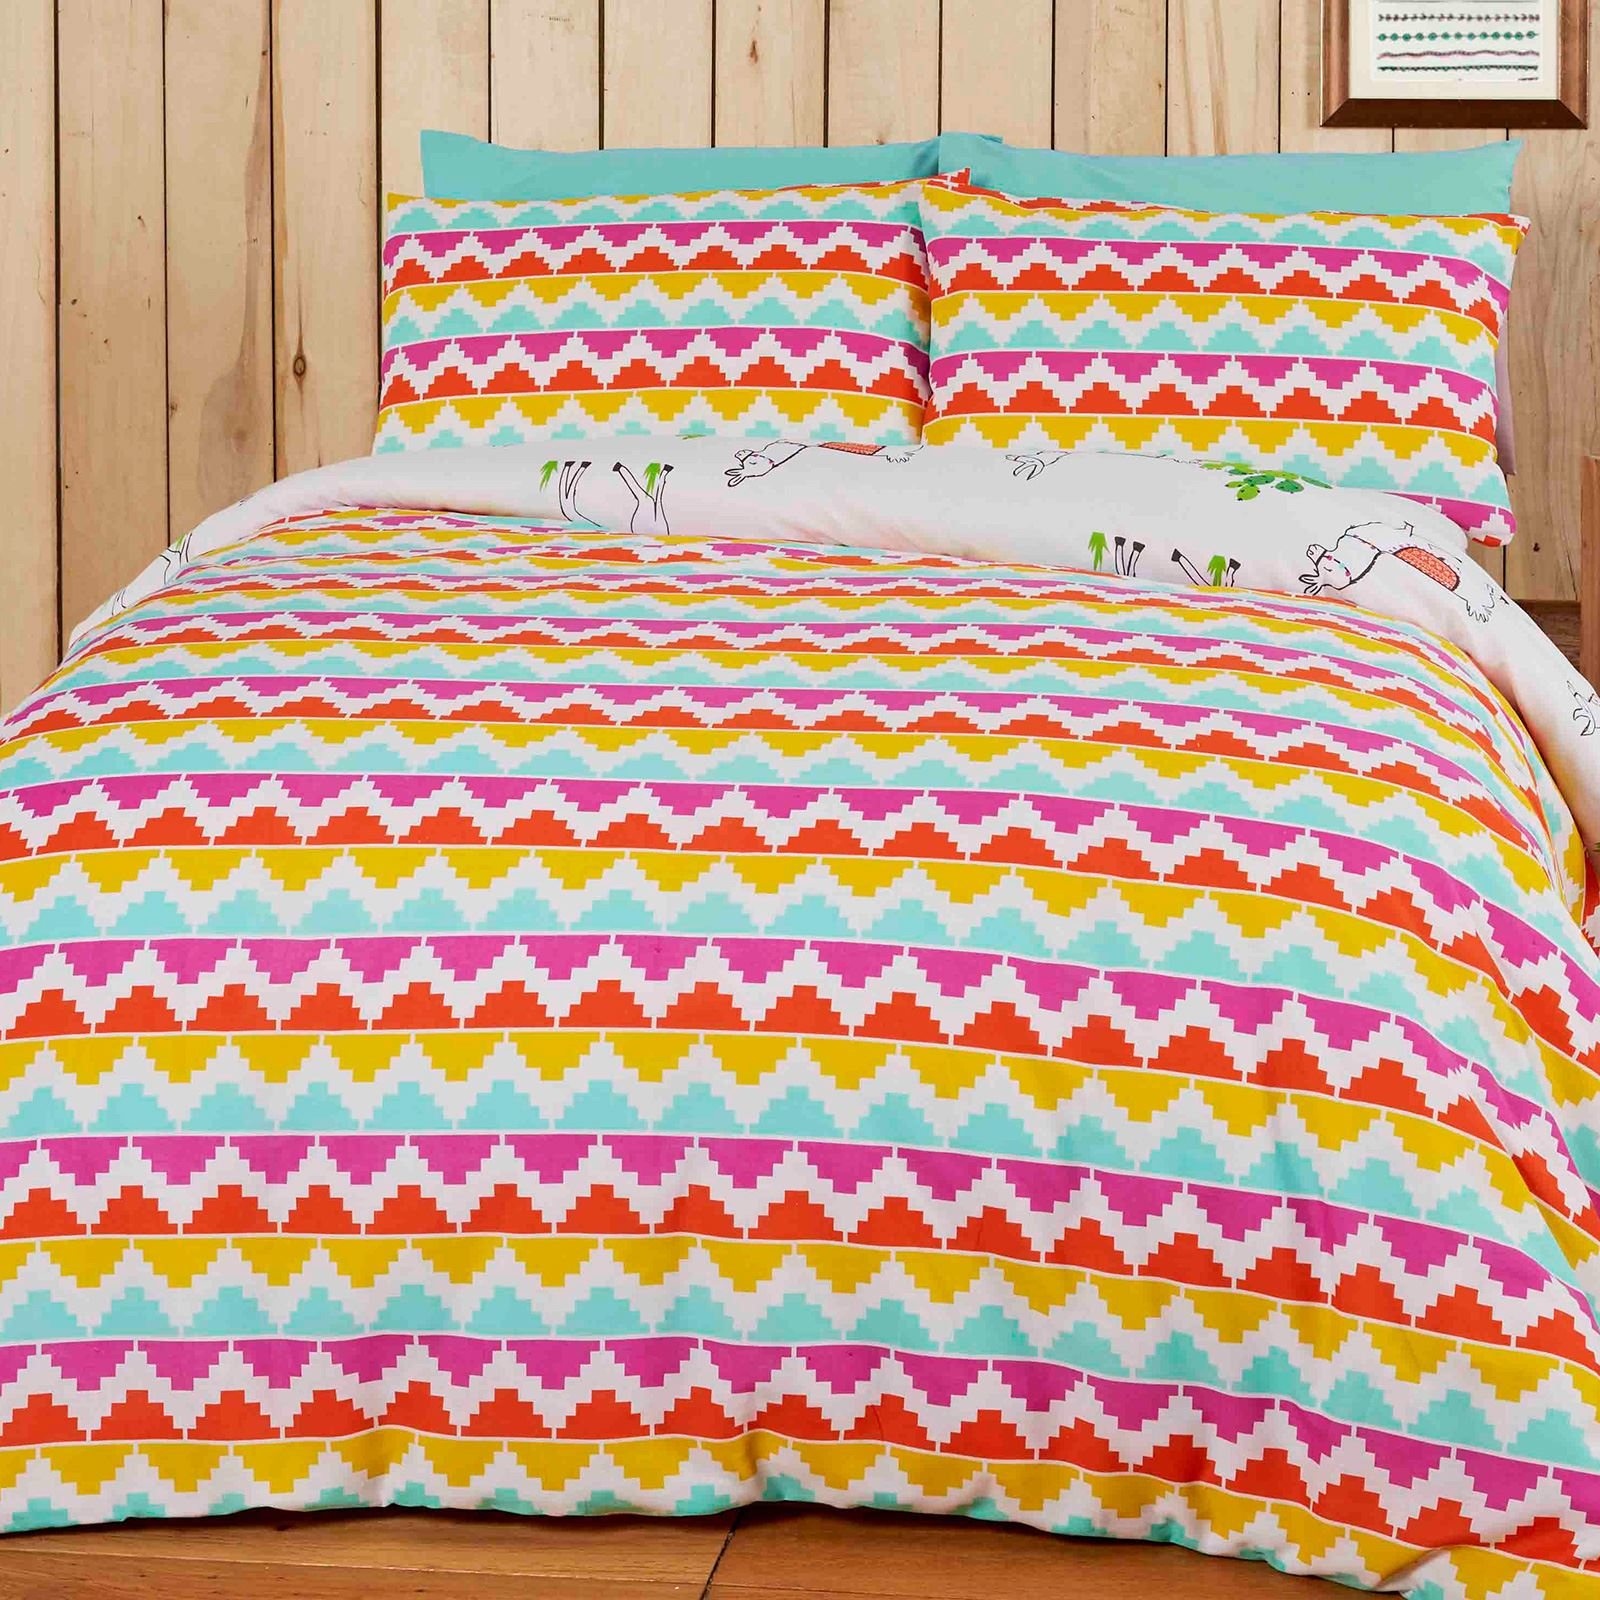 HAPPY LLAMAS DOUBLE DUVET COVER SET PERU AZTEC COLOURFUL BEDDING REVERSIBLE